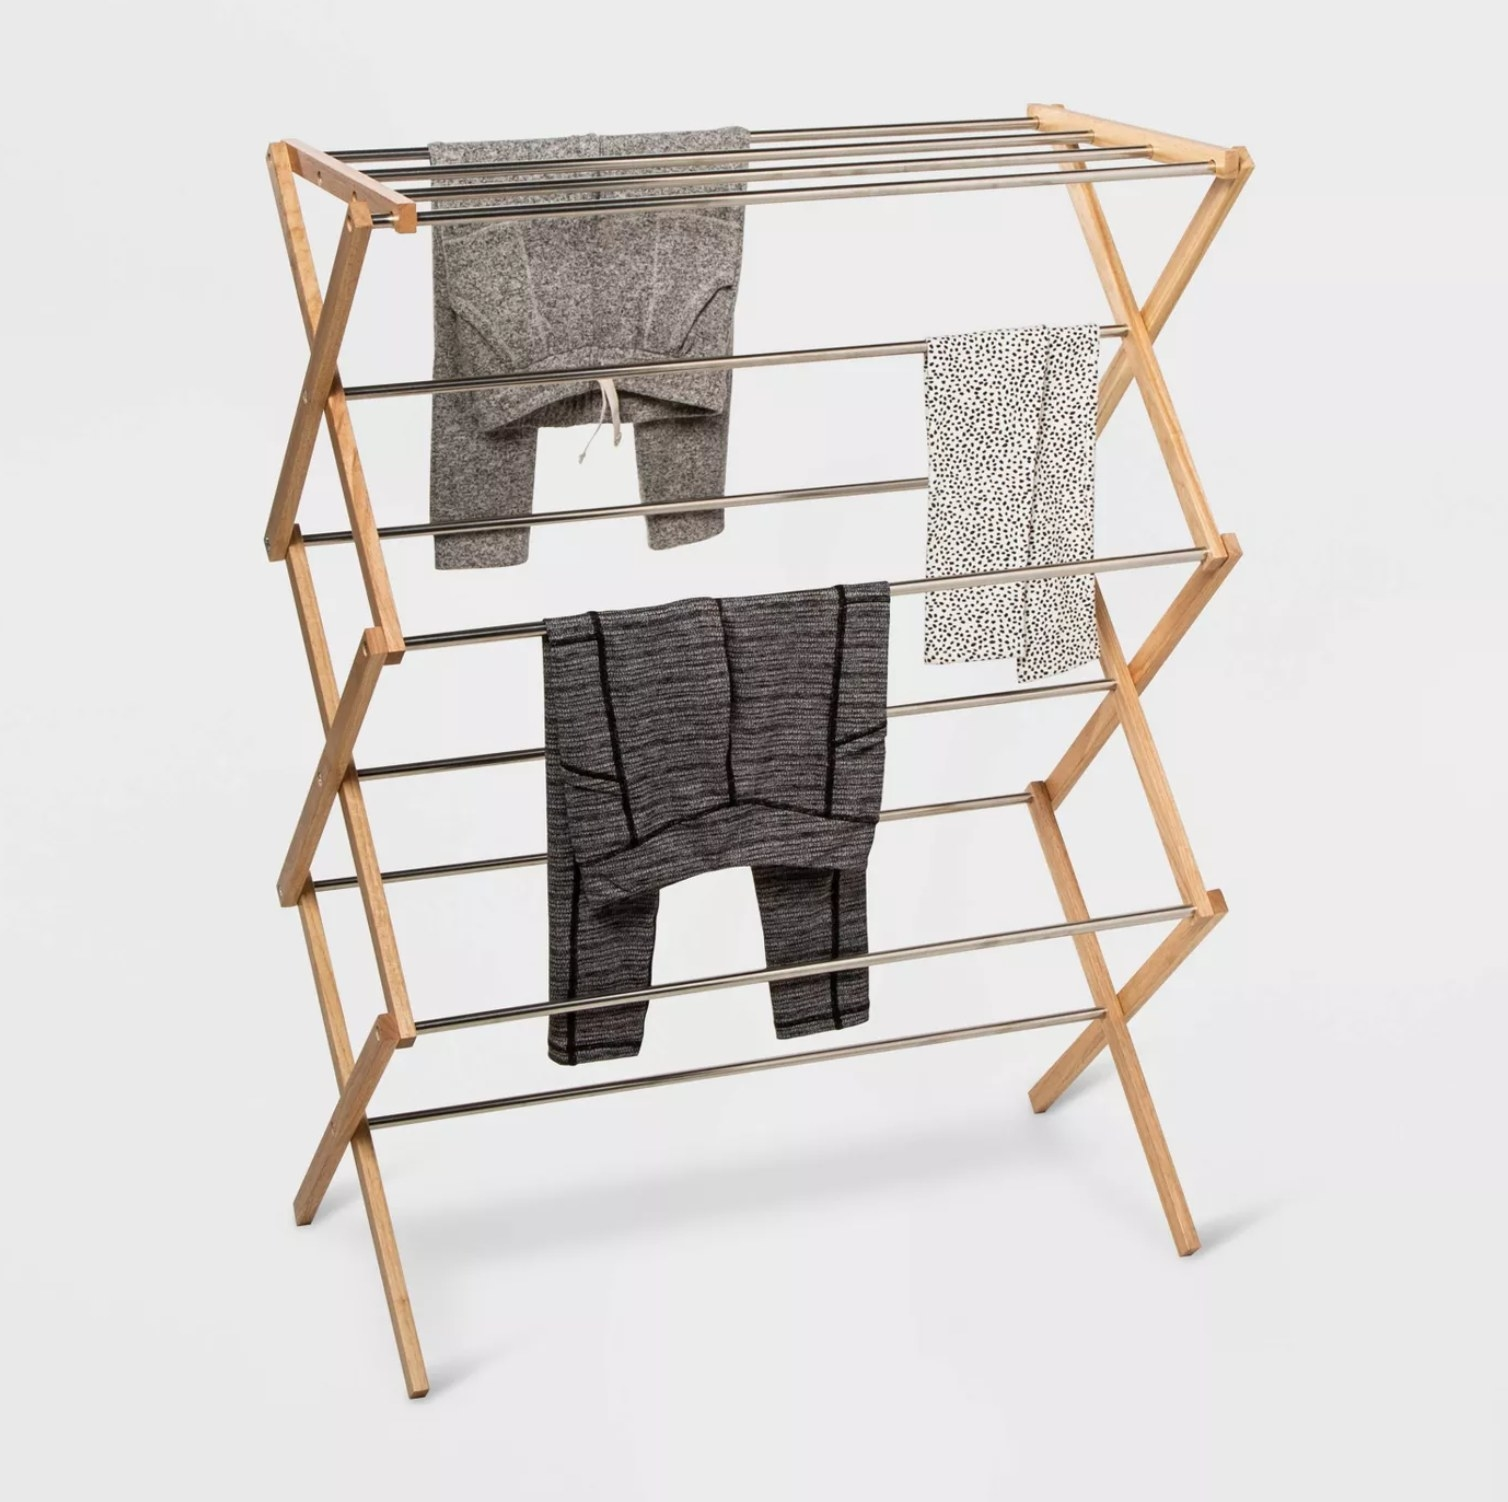 the drying rack with clothes hangin off it